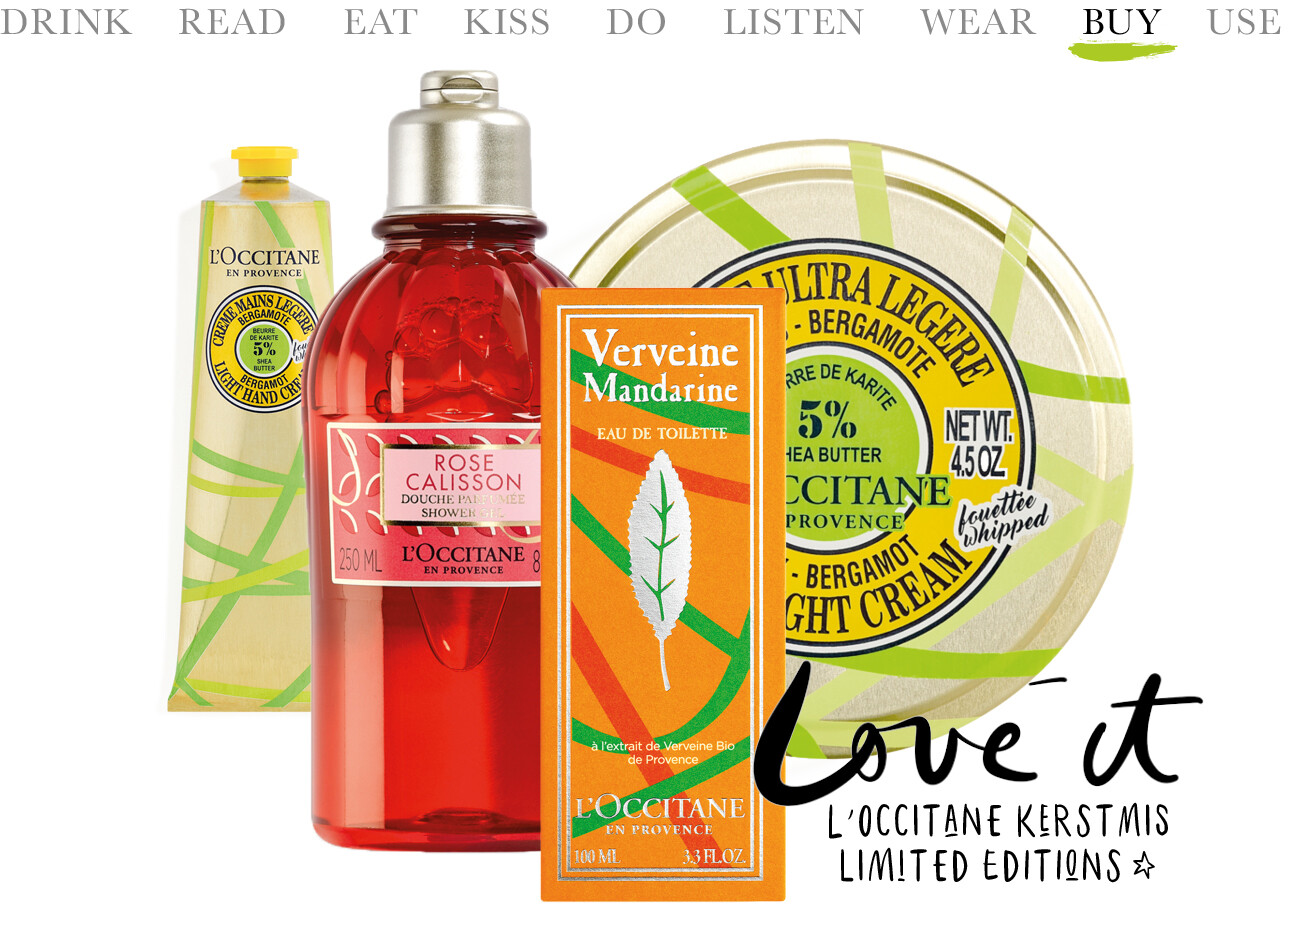 L'occitane kerstmis limited editions artikelen